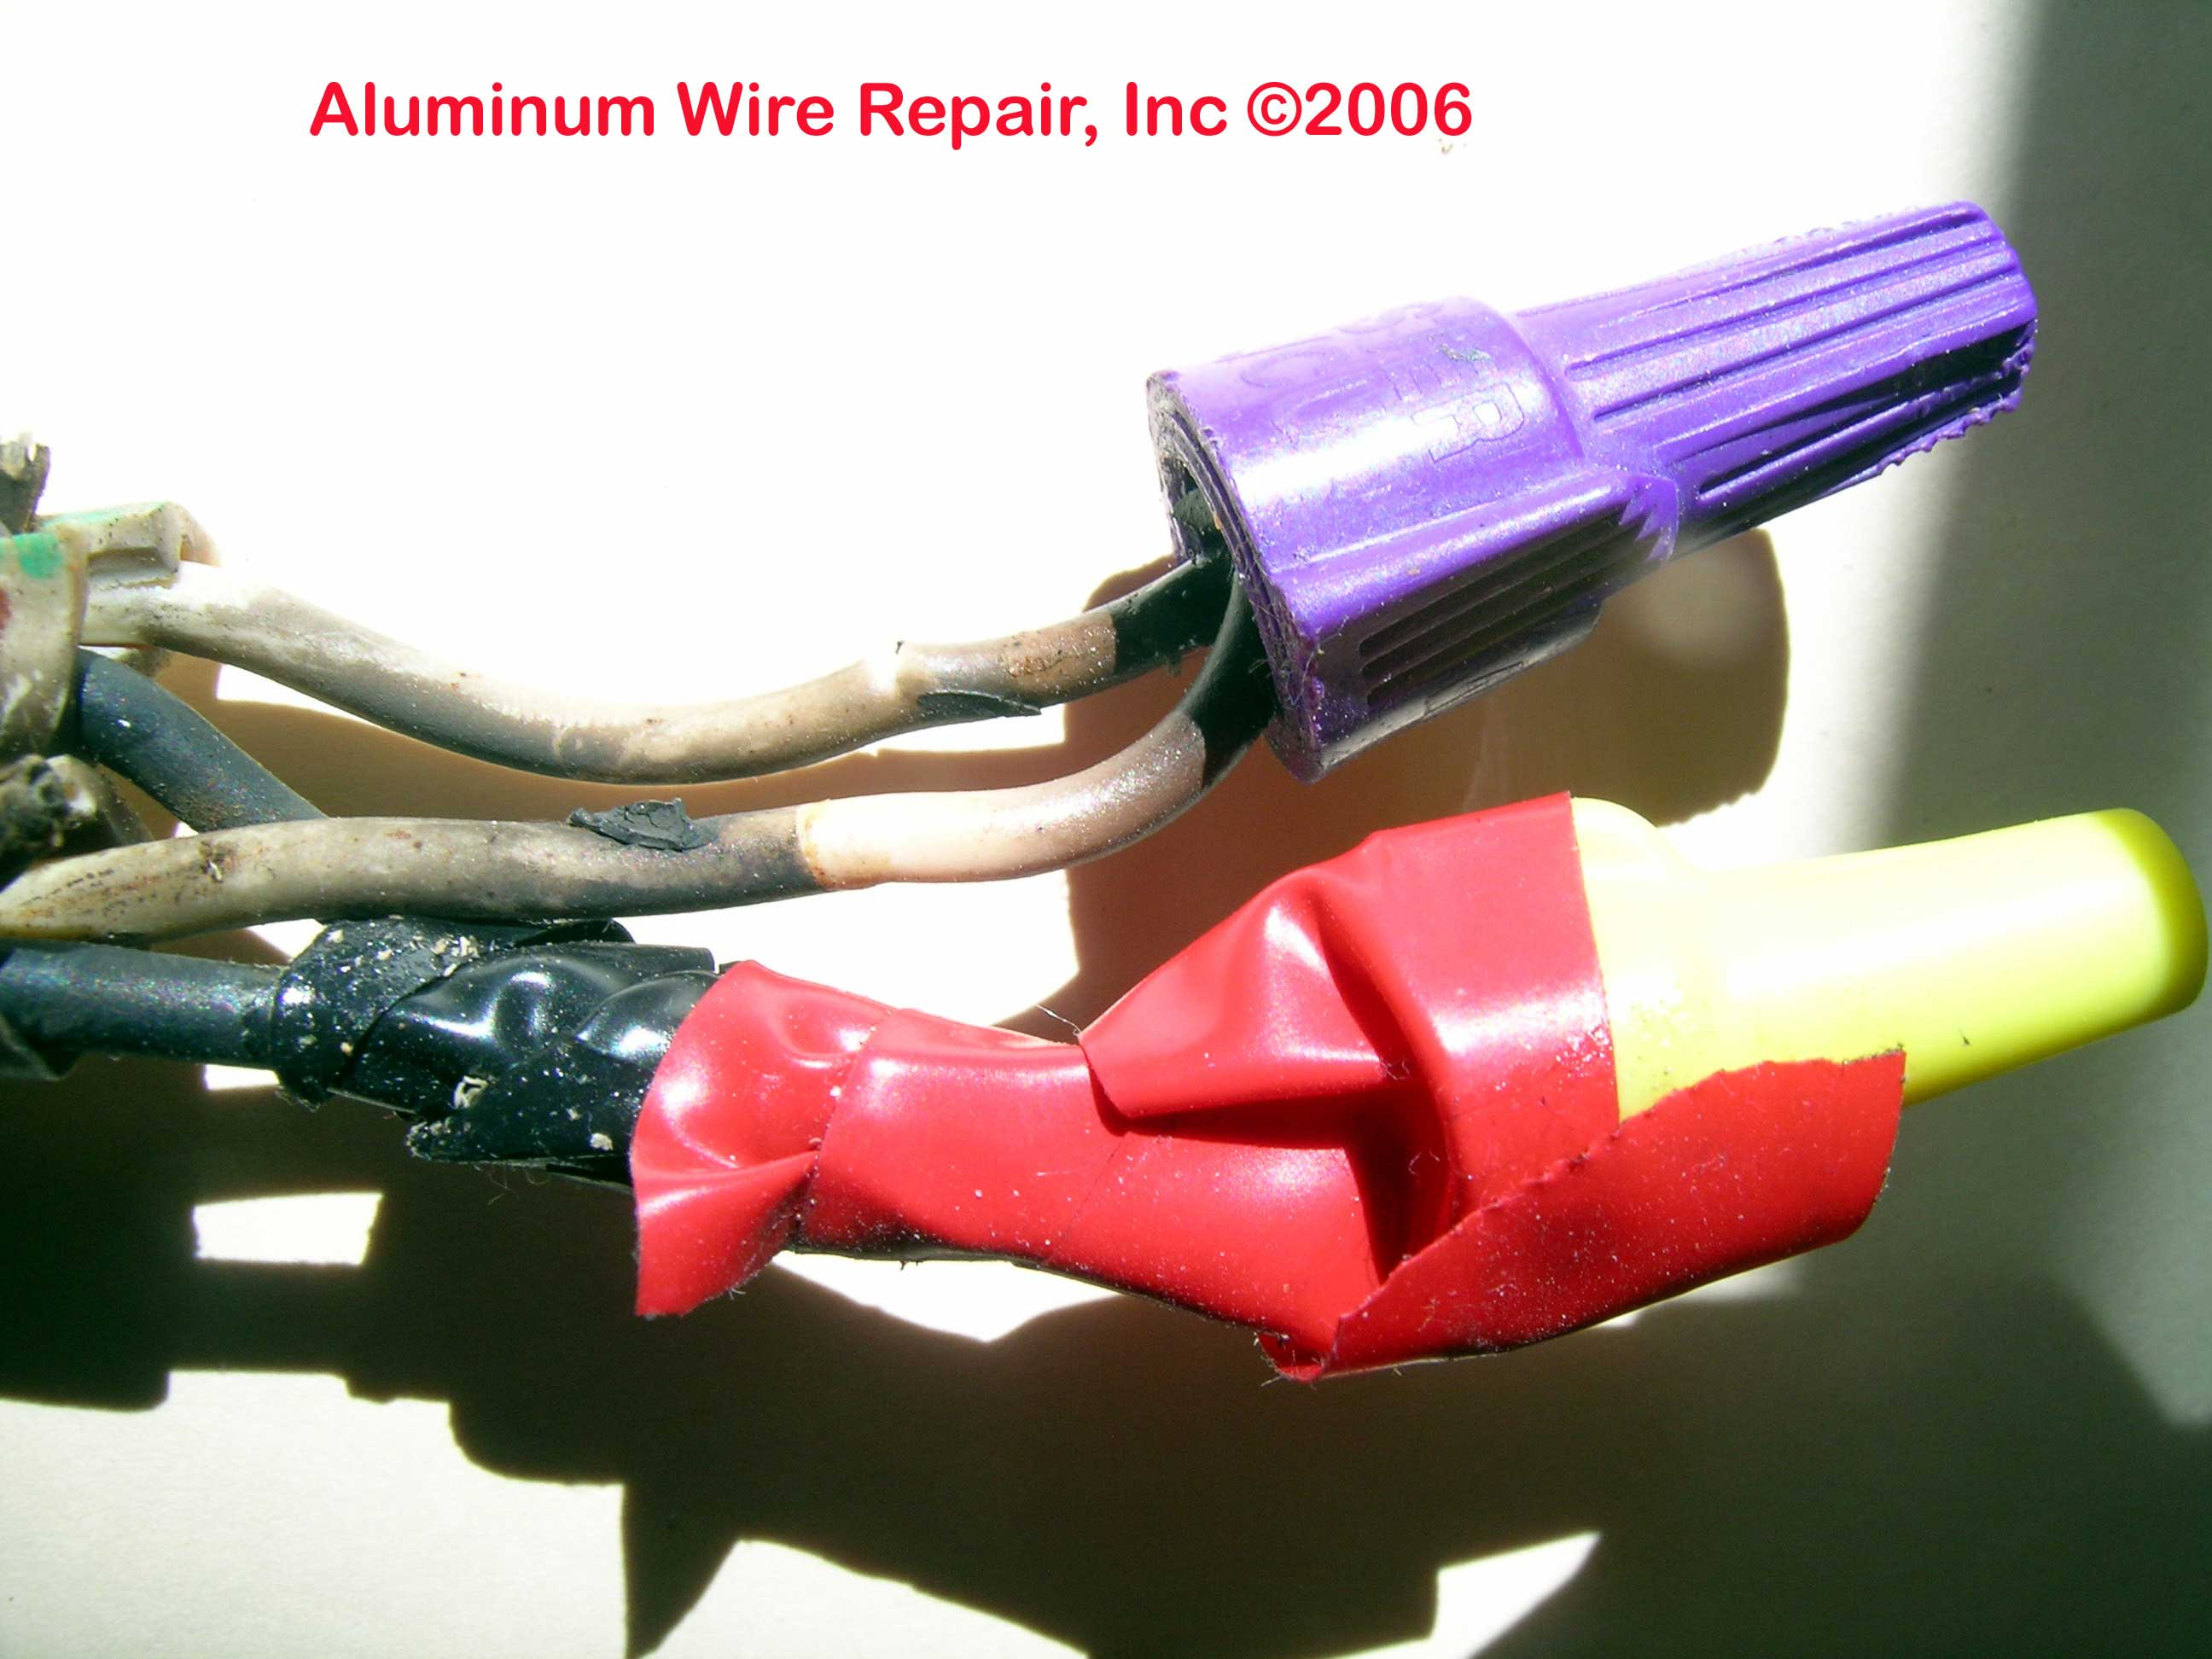 Burned Purple Wirenuts Found in the Field - Aluminum Wire ... on pigtail elec, pigtail wiring for home, pigtail wiring diagram for wiring, pigtail electrical code, pigtail extension cord lighted, pigtail electric fence posts,